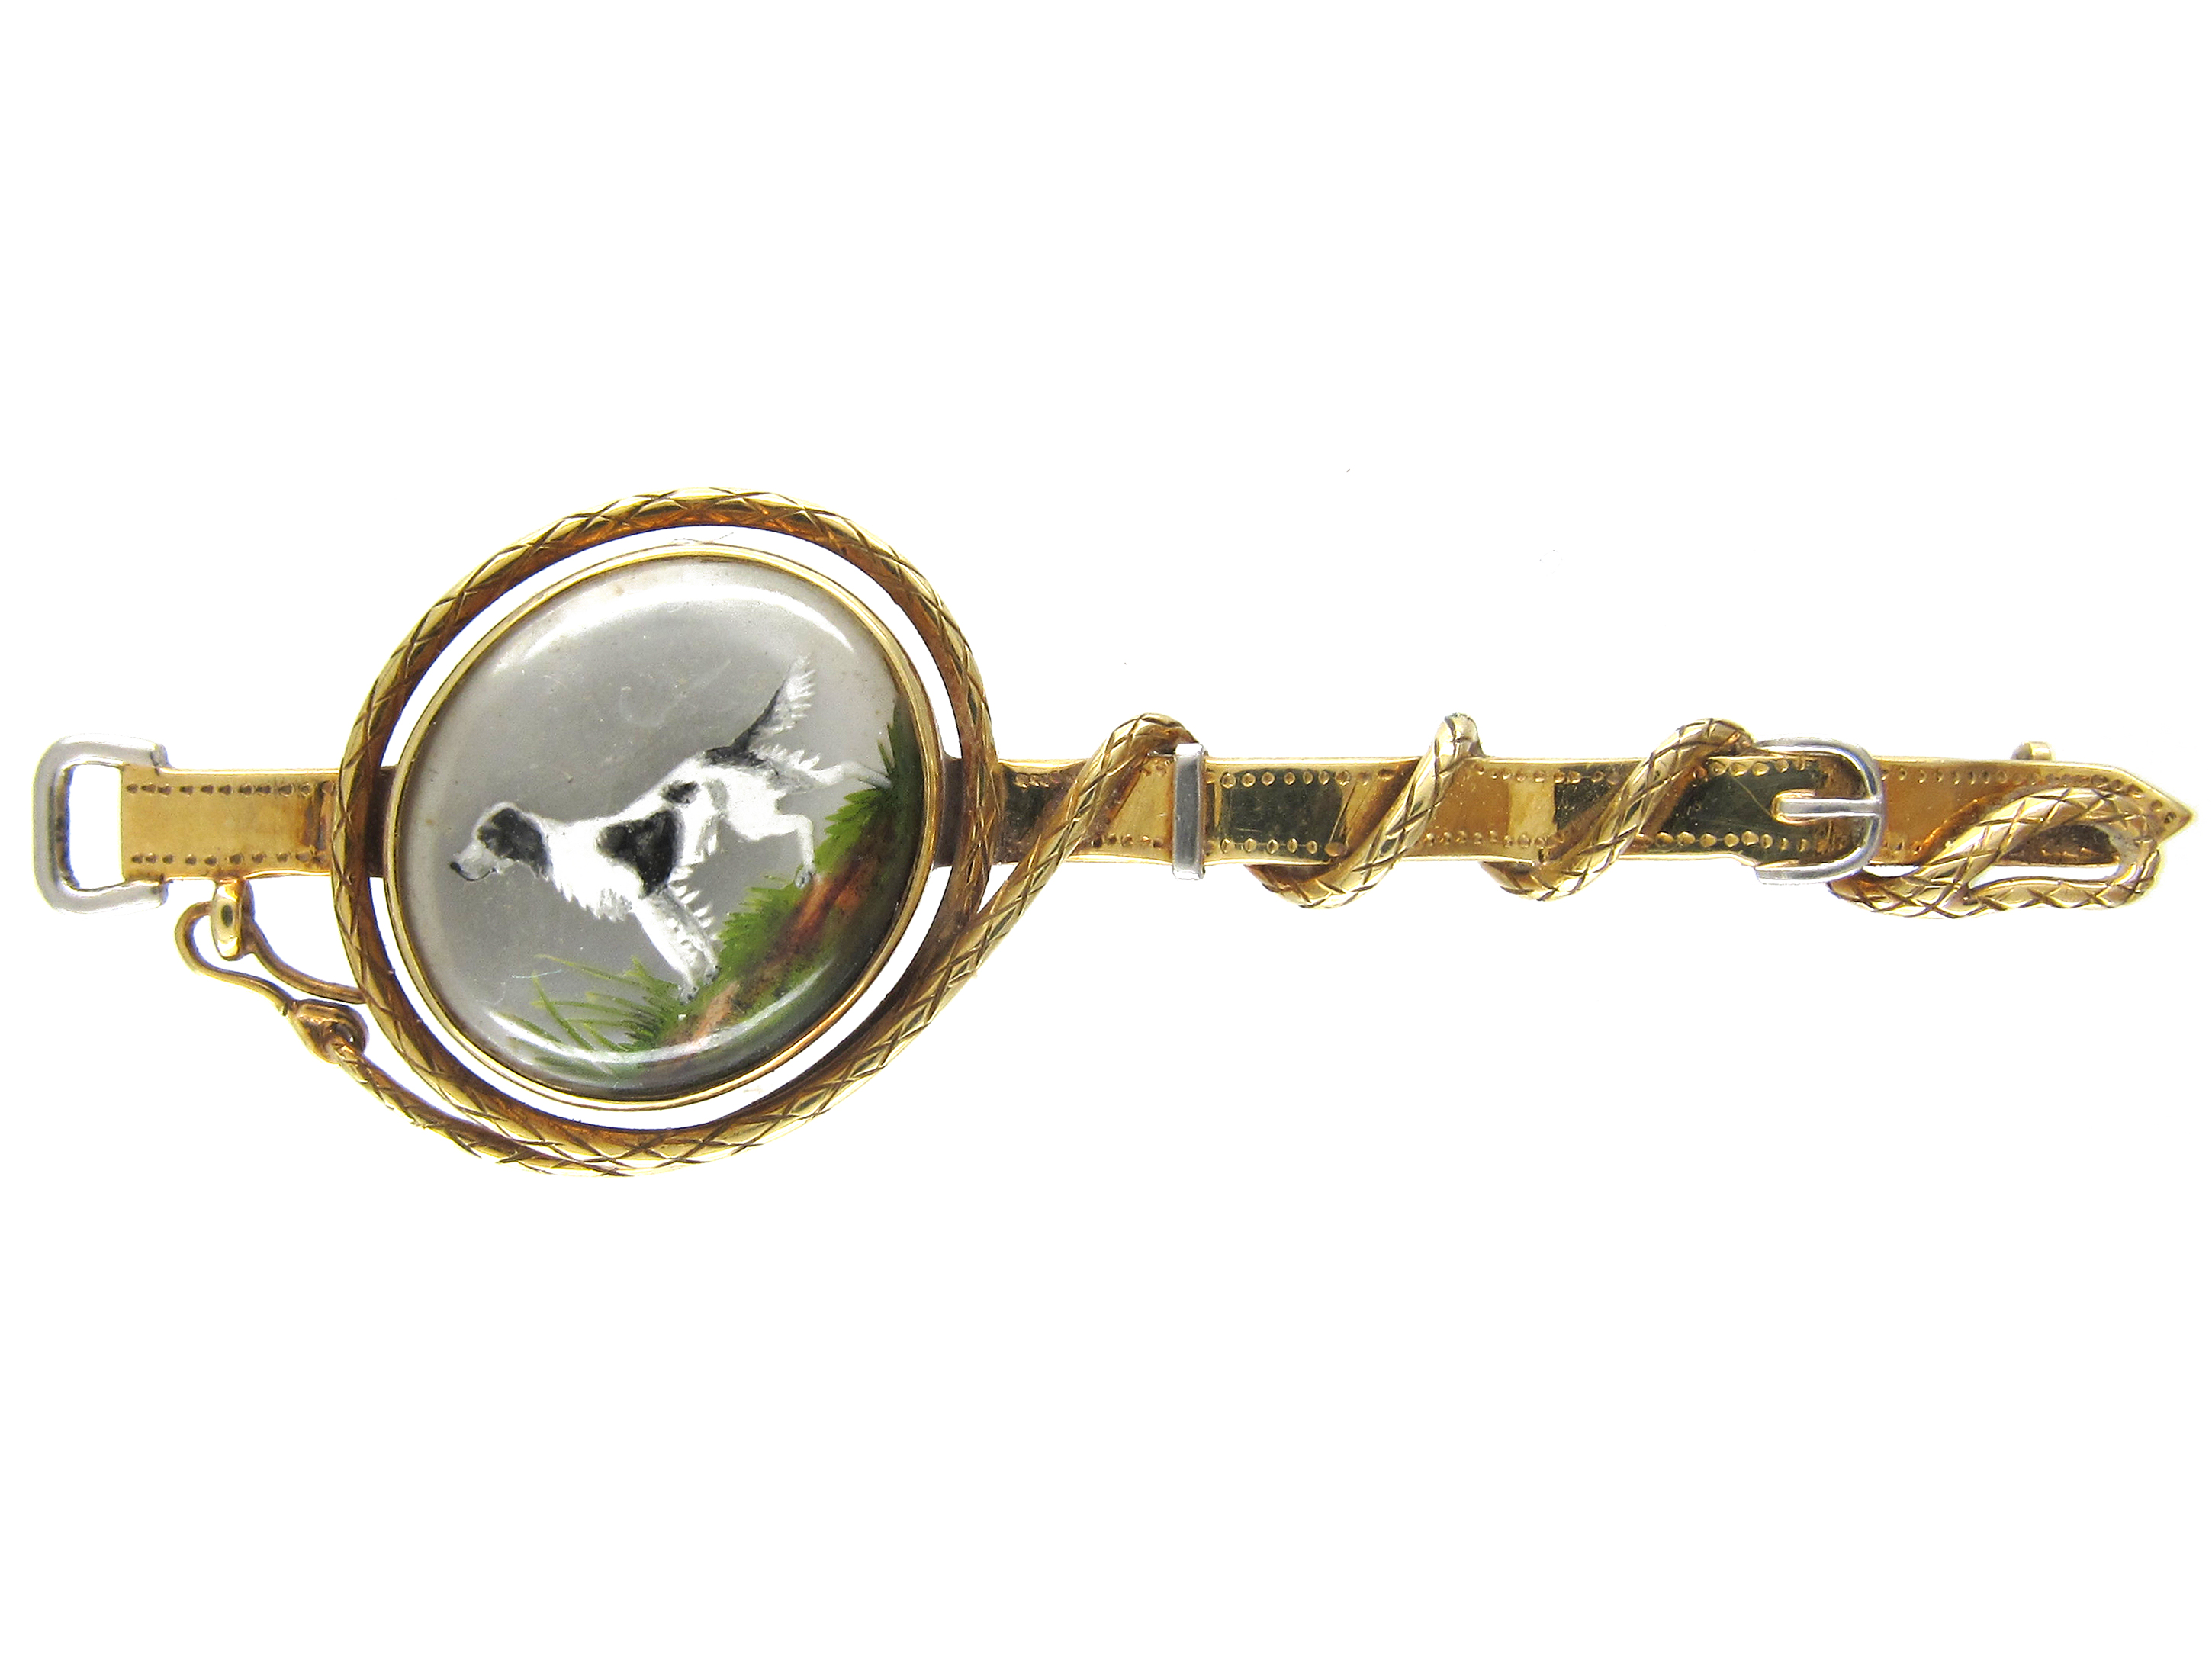 15ct Gold Reverse Intaglio Spaniel with Collar & Lead Brooch